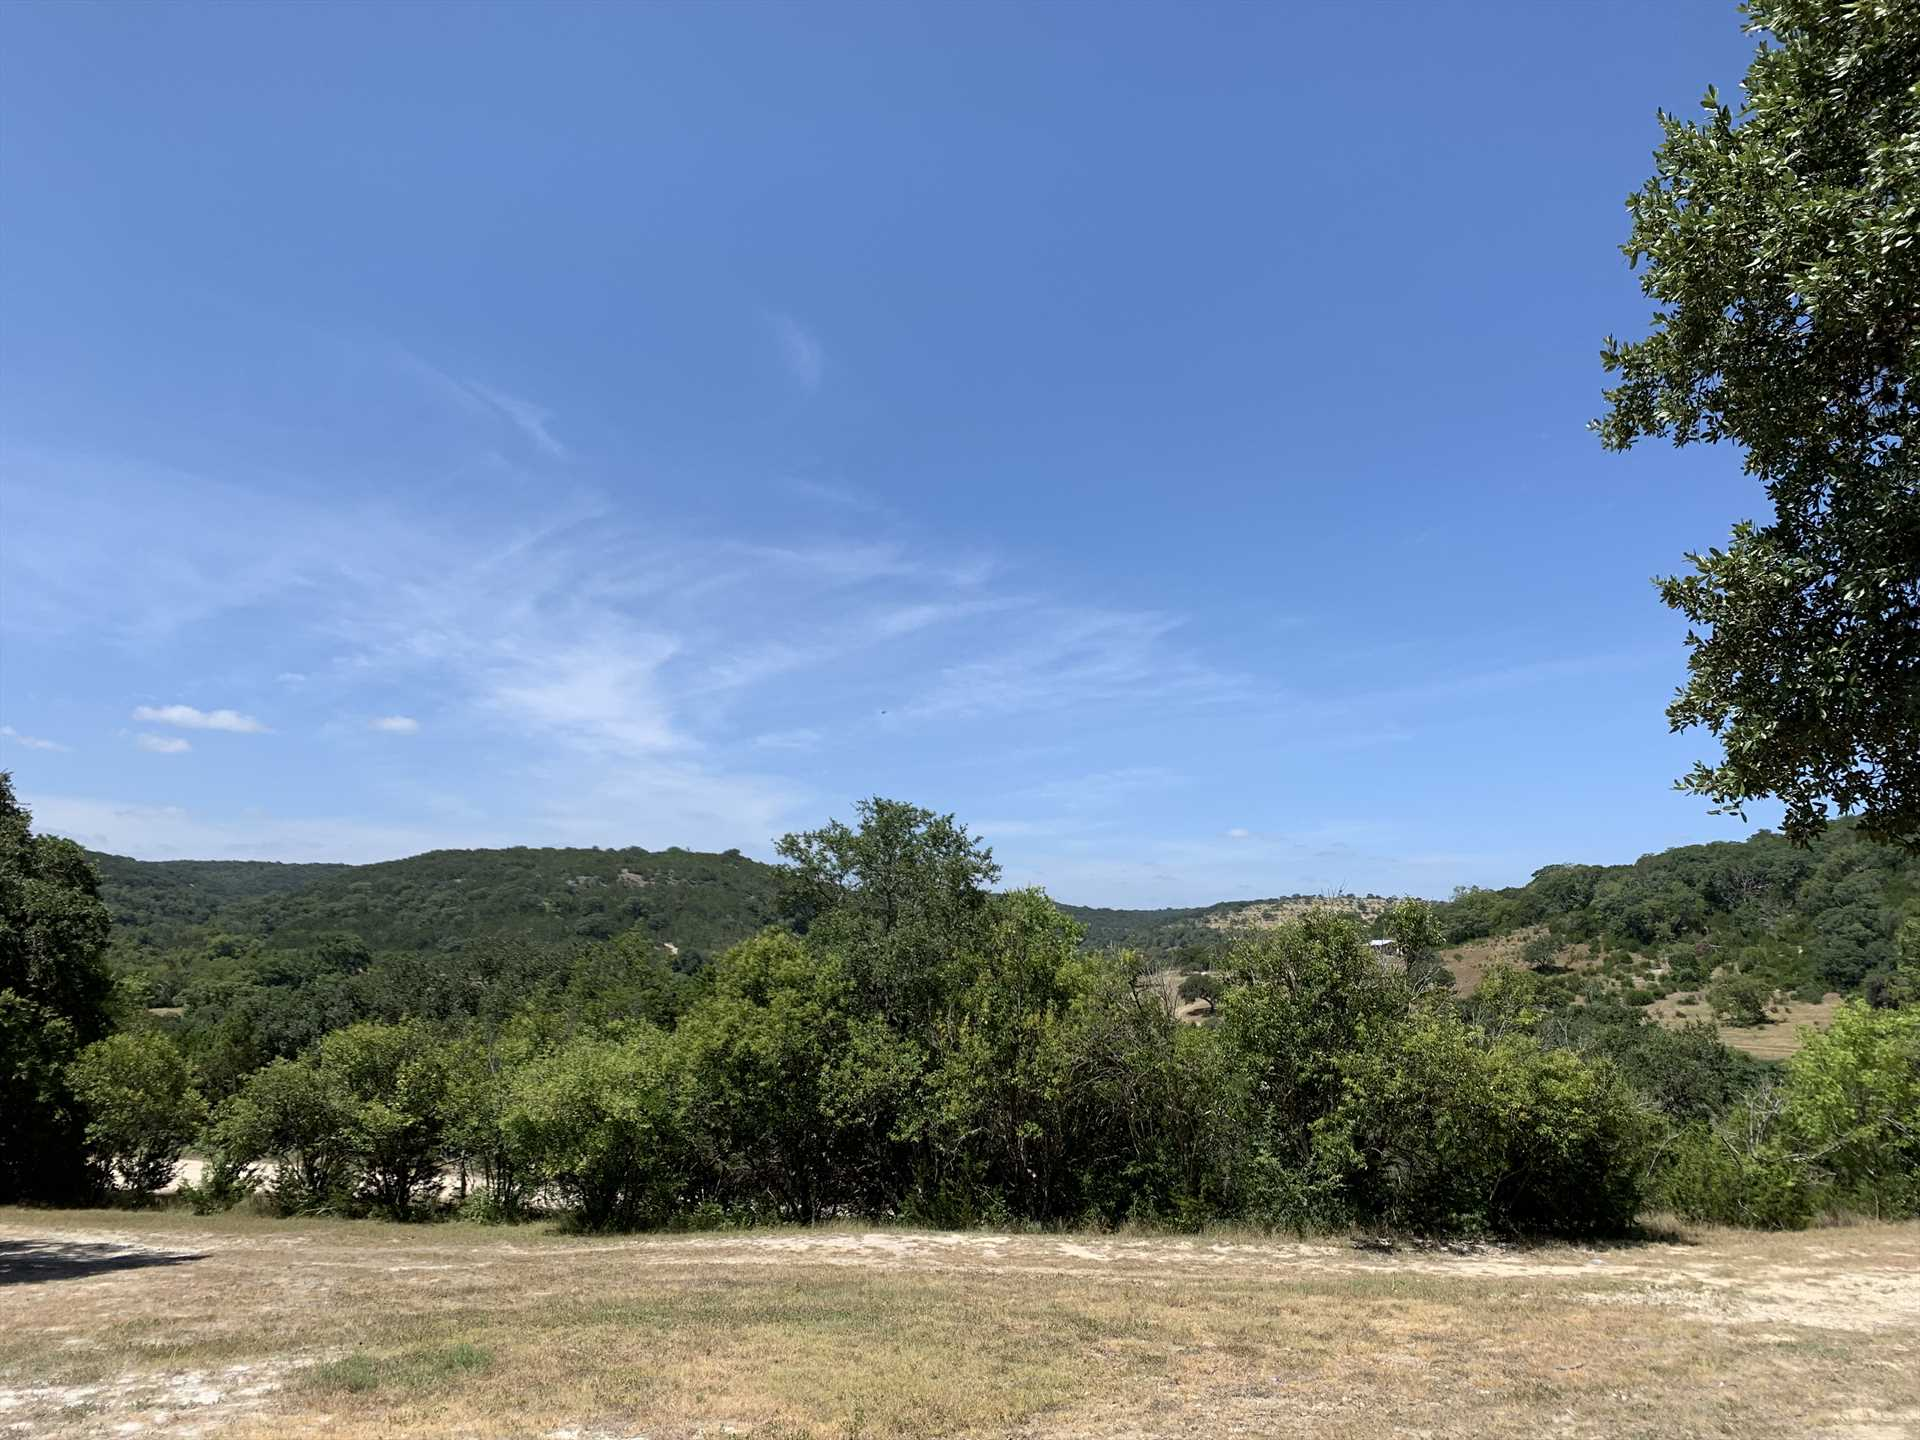 There won't be a single minute out of your day where you won't find a stunning Hill Country view to enjoy-and the stargazing at night is spectacular!